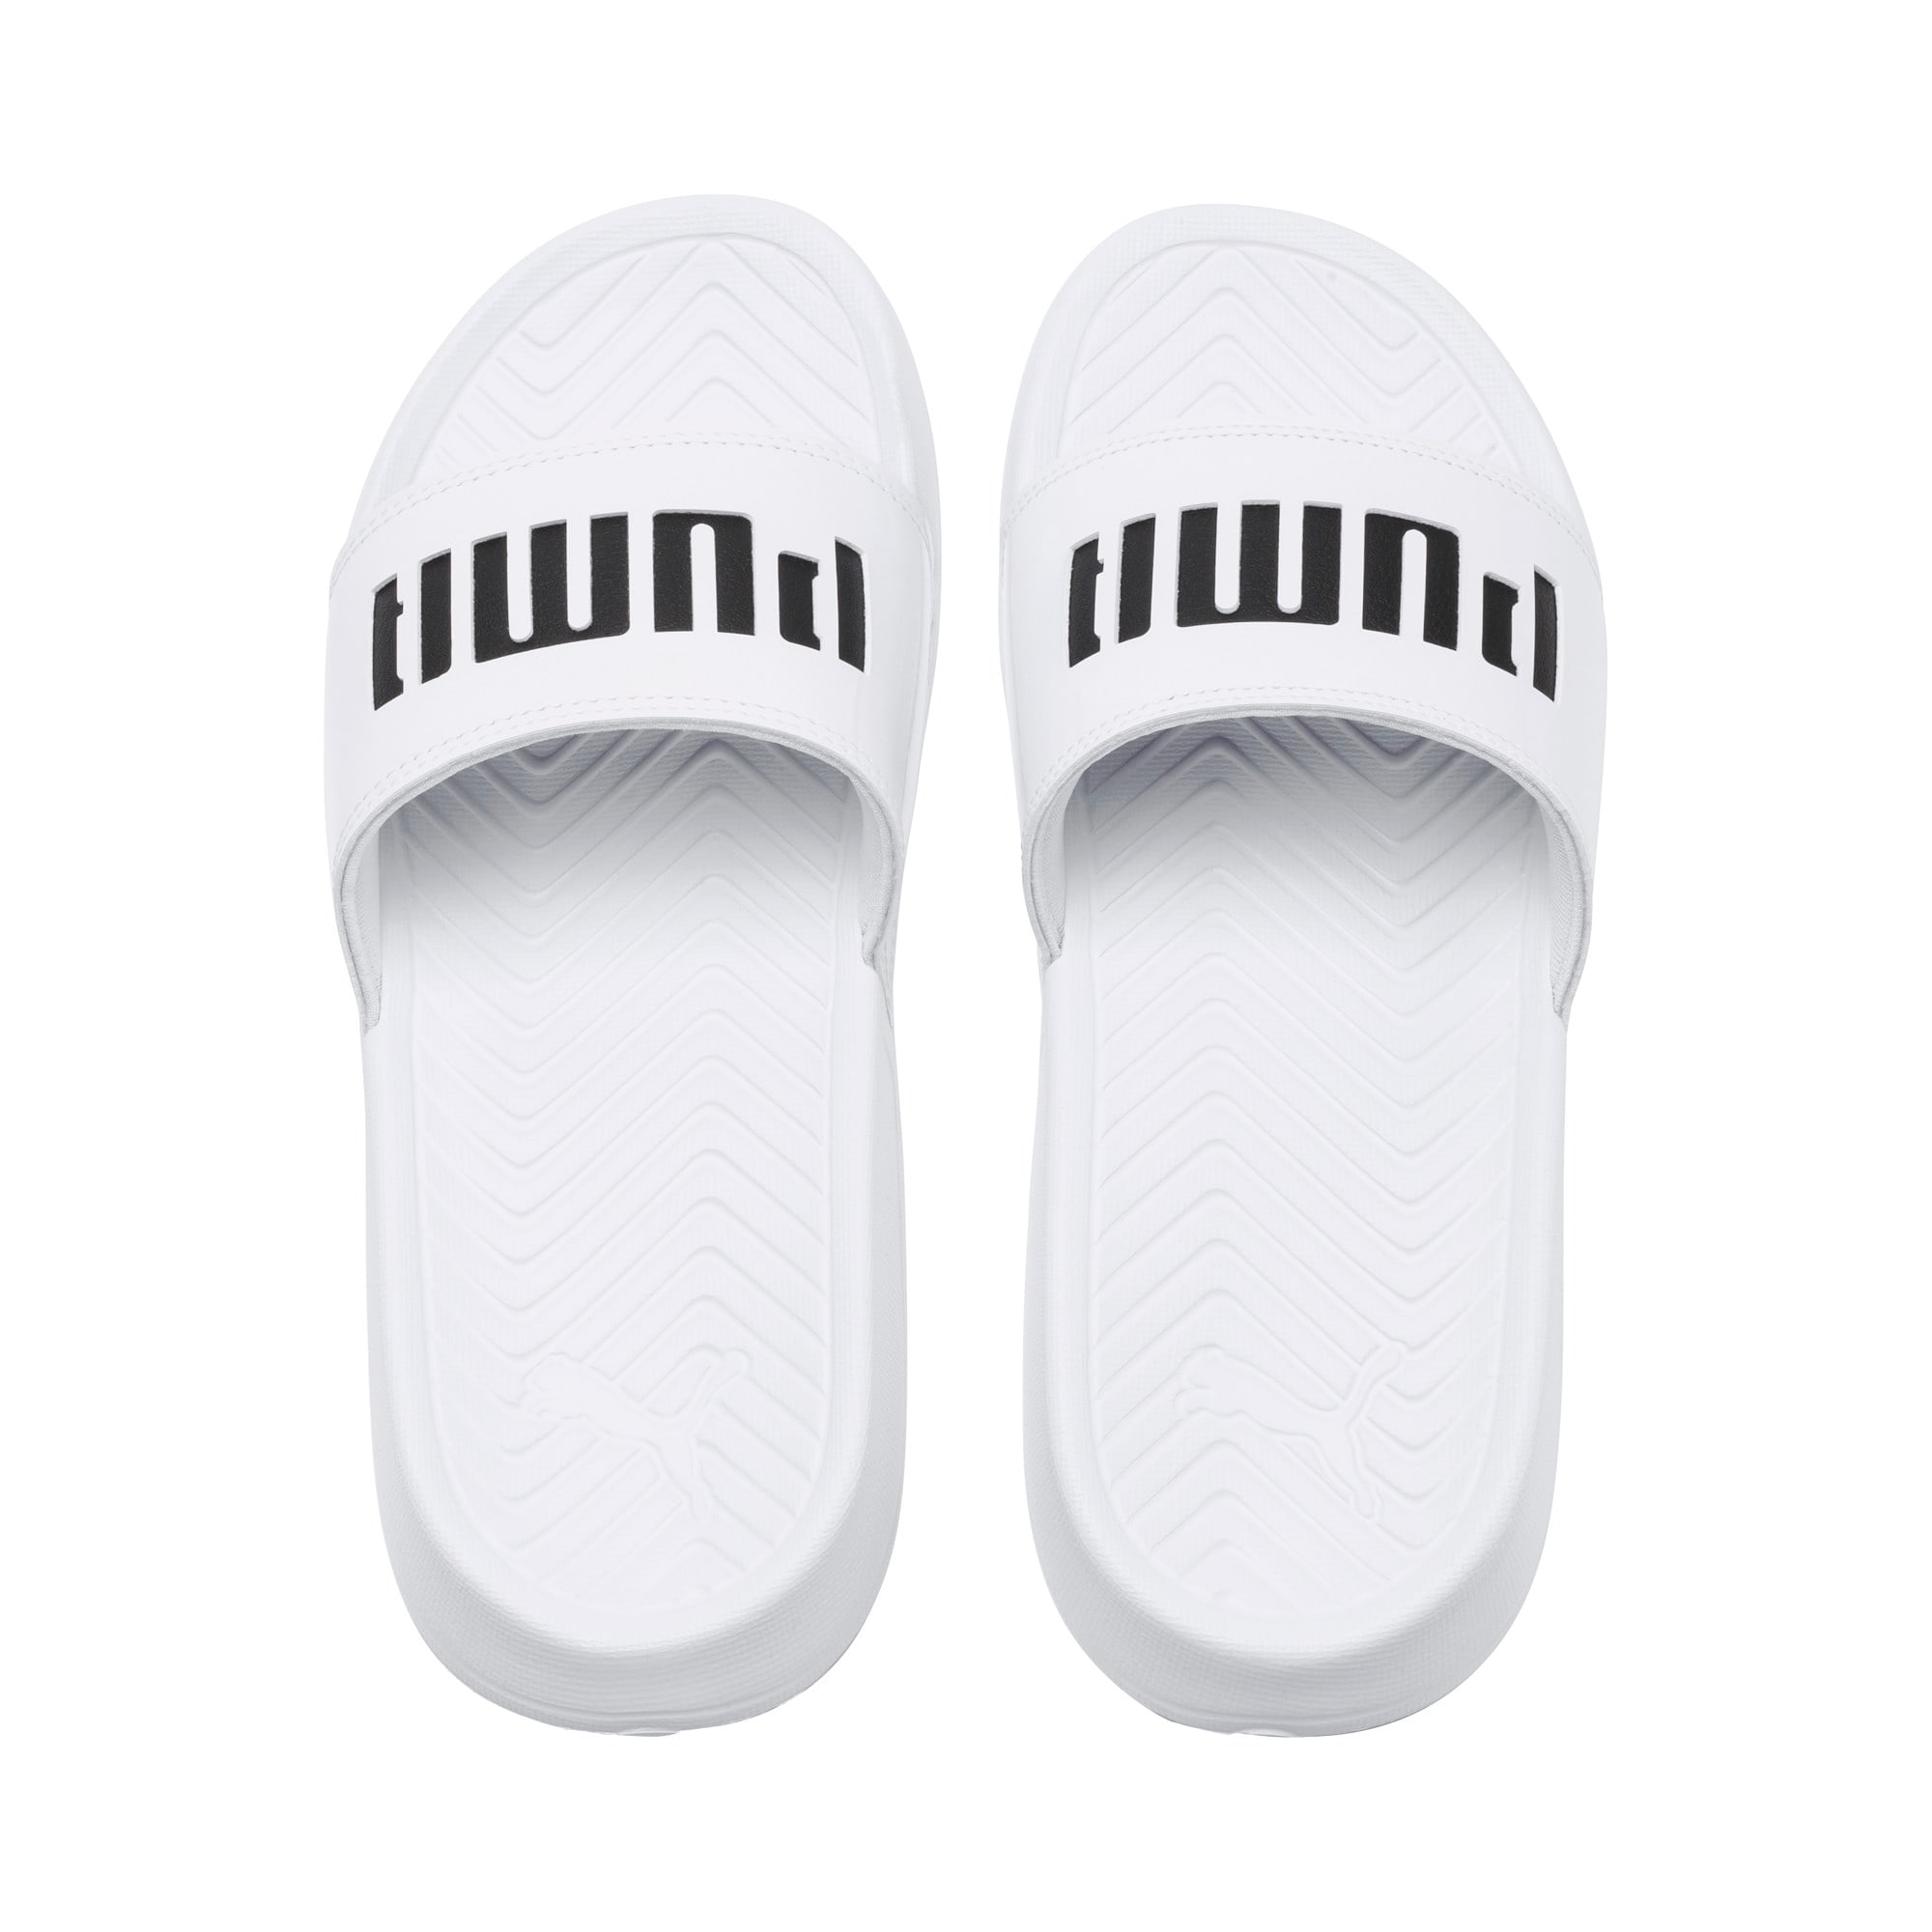 Thumbnail 6 of Popcat Patent Women's Sandals, Puma White-Puma Black, medium